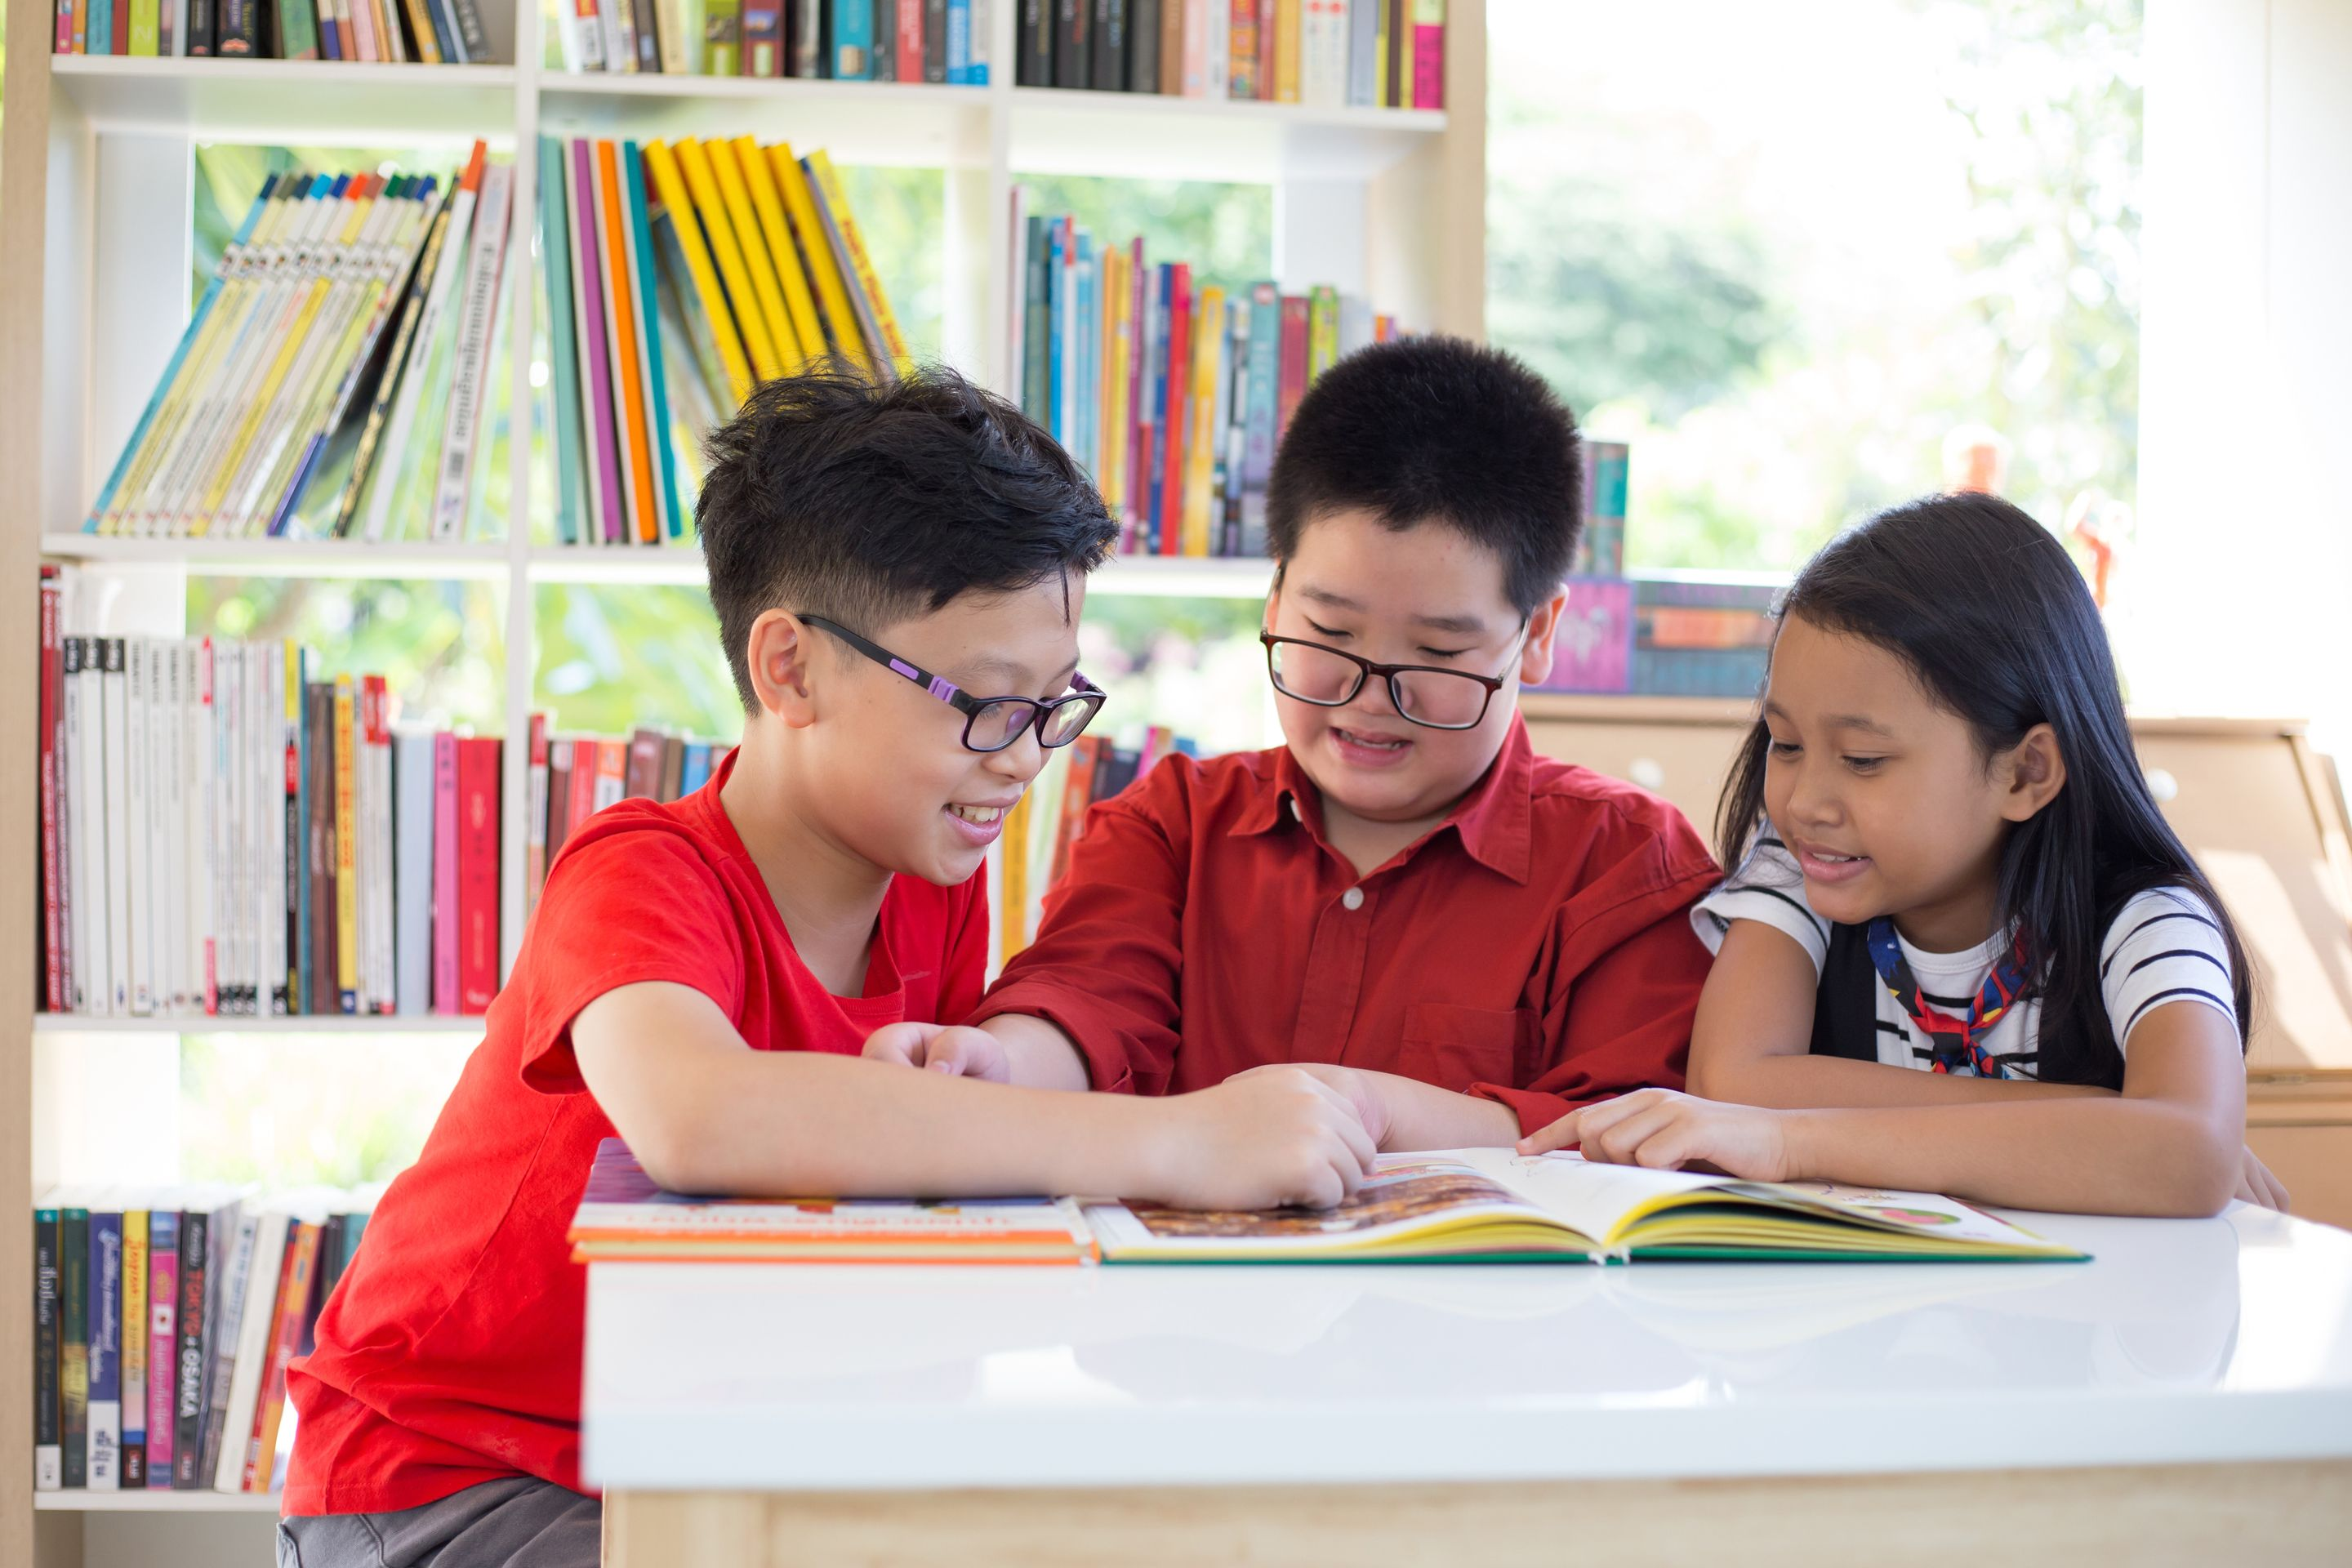 Three elementary students reading together in a library